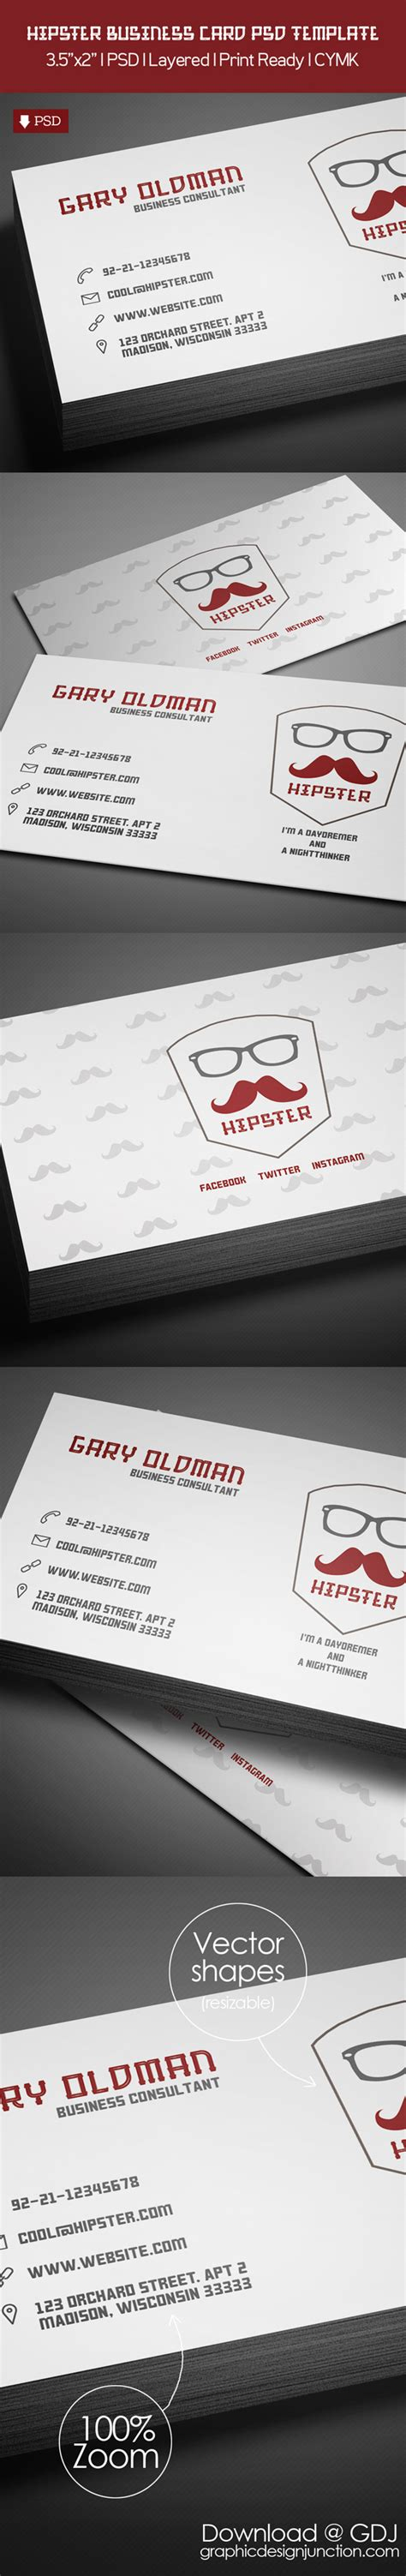 business card template psd 2017 freebies highest quality business card templates psd